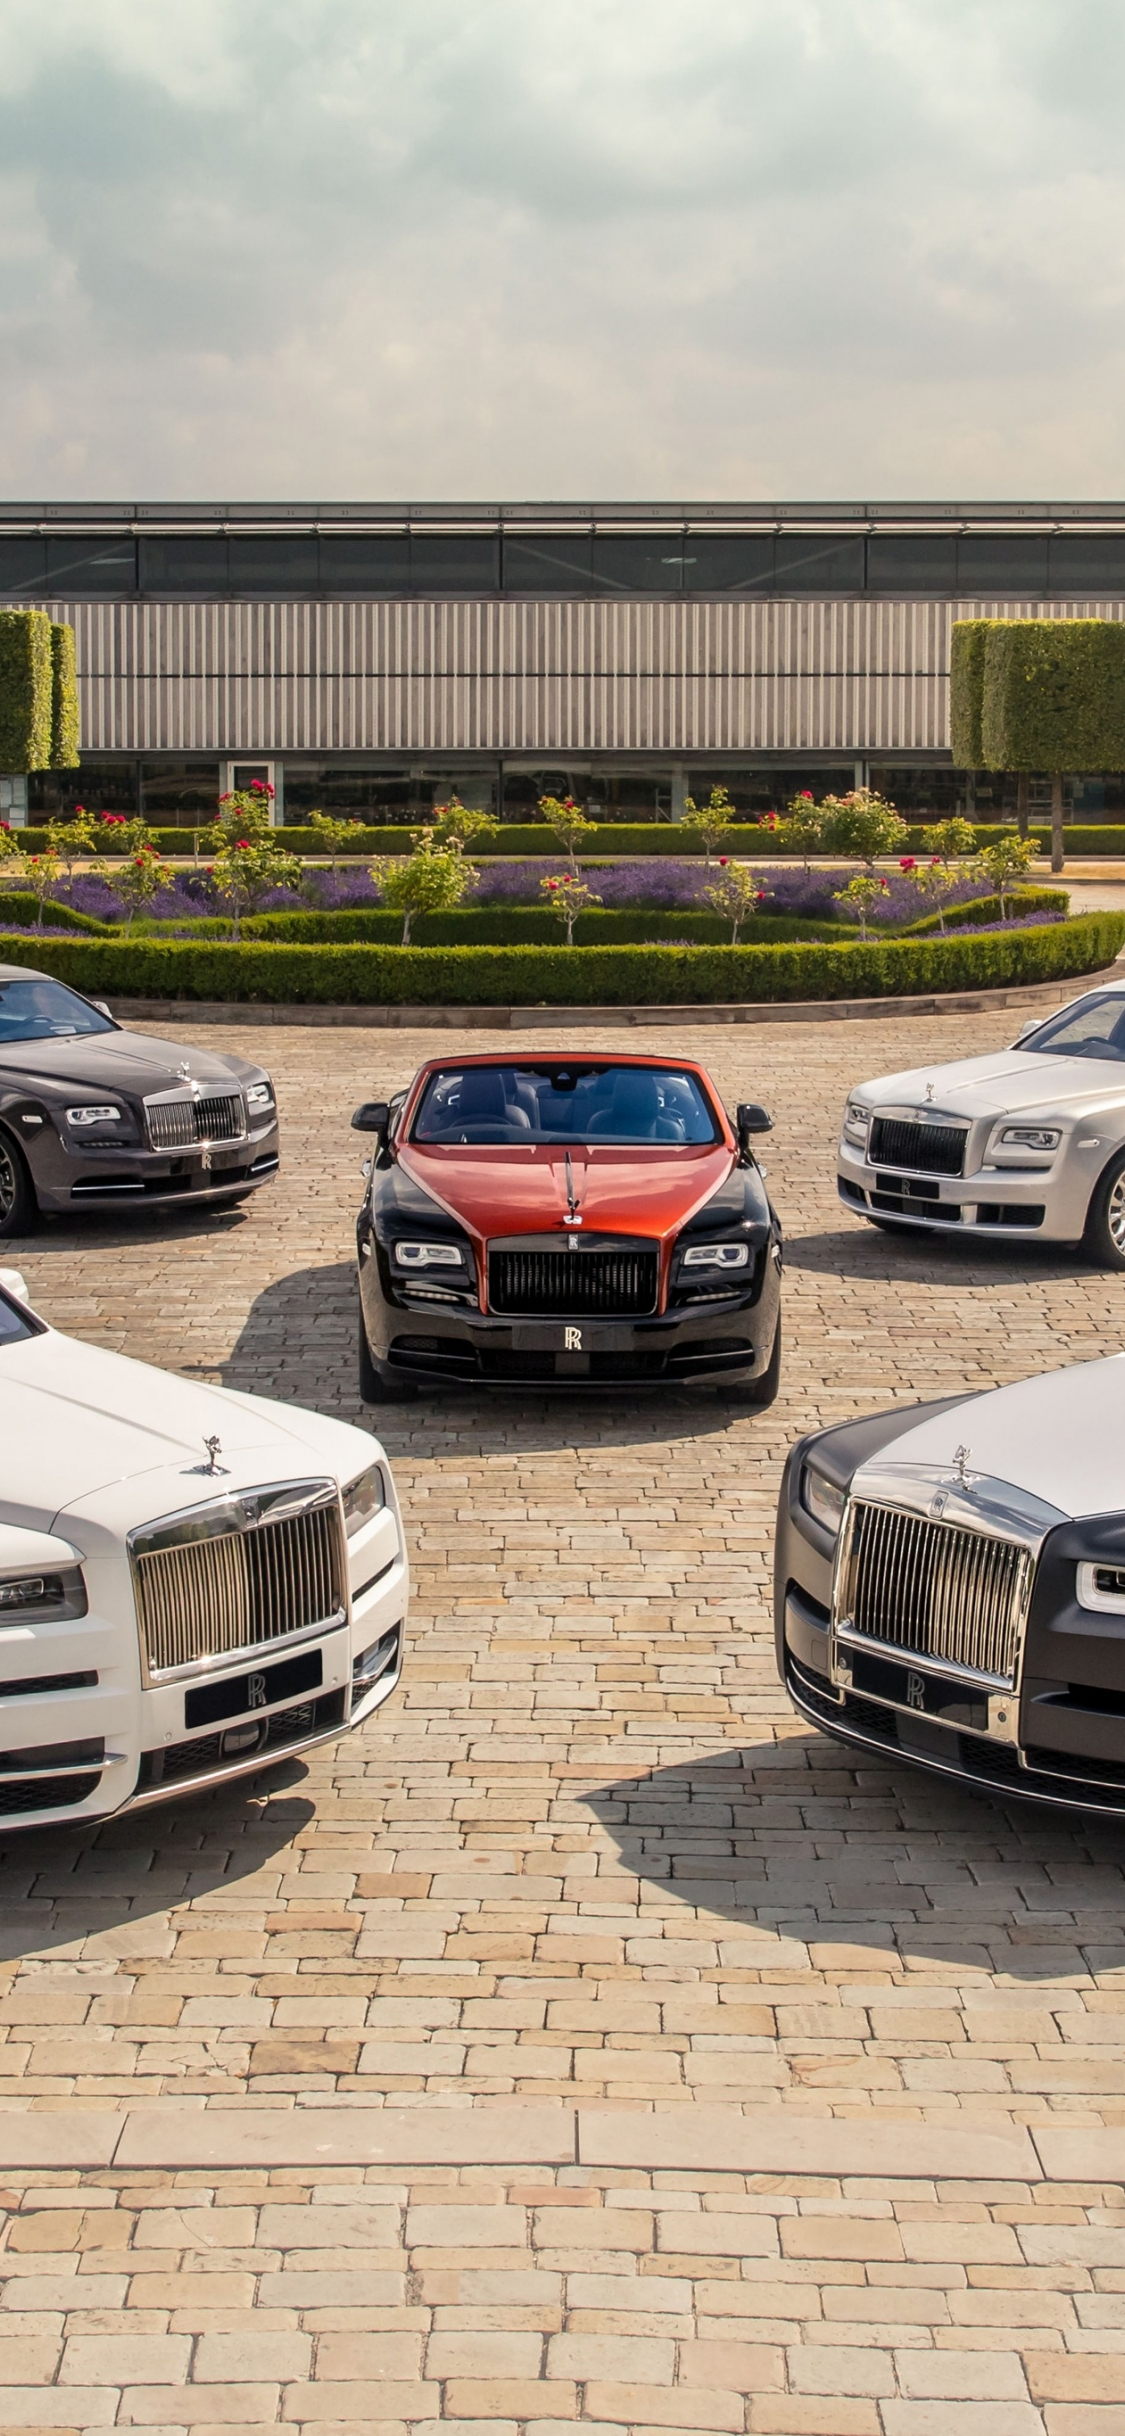 RollsRoyce Ghost Black Badge Wallpaper and Image